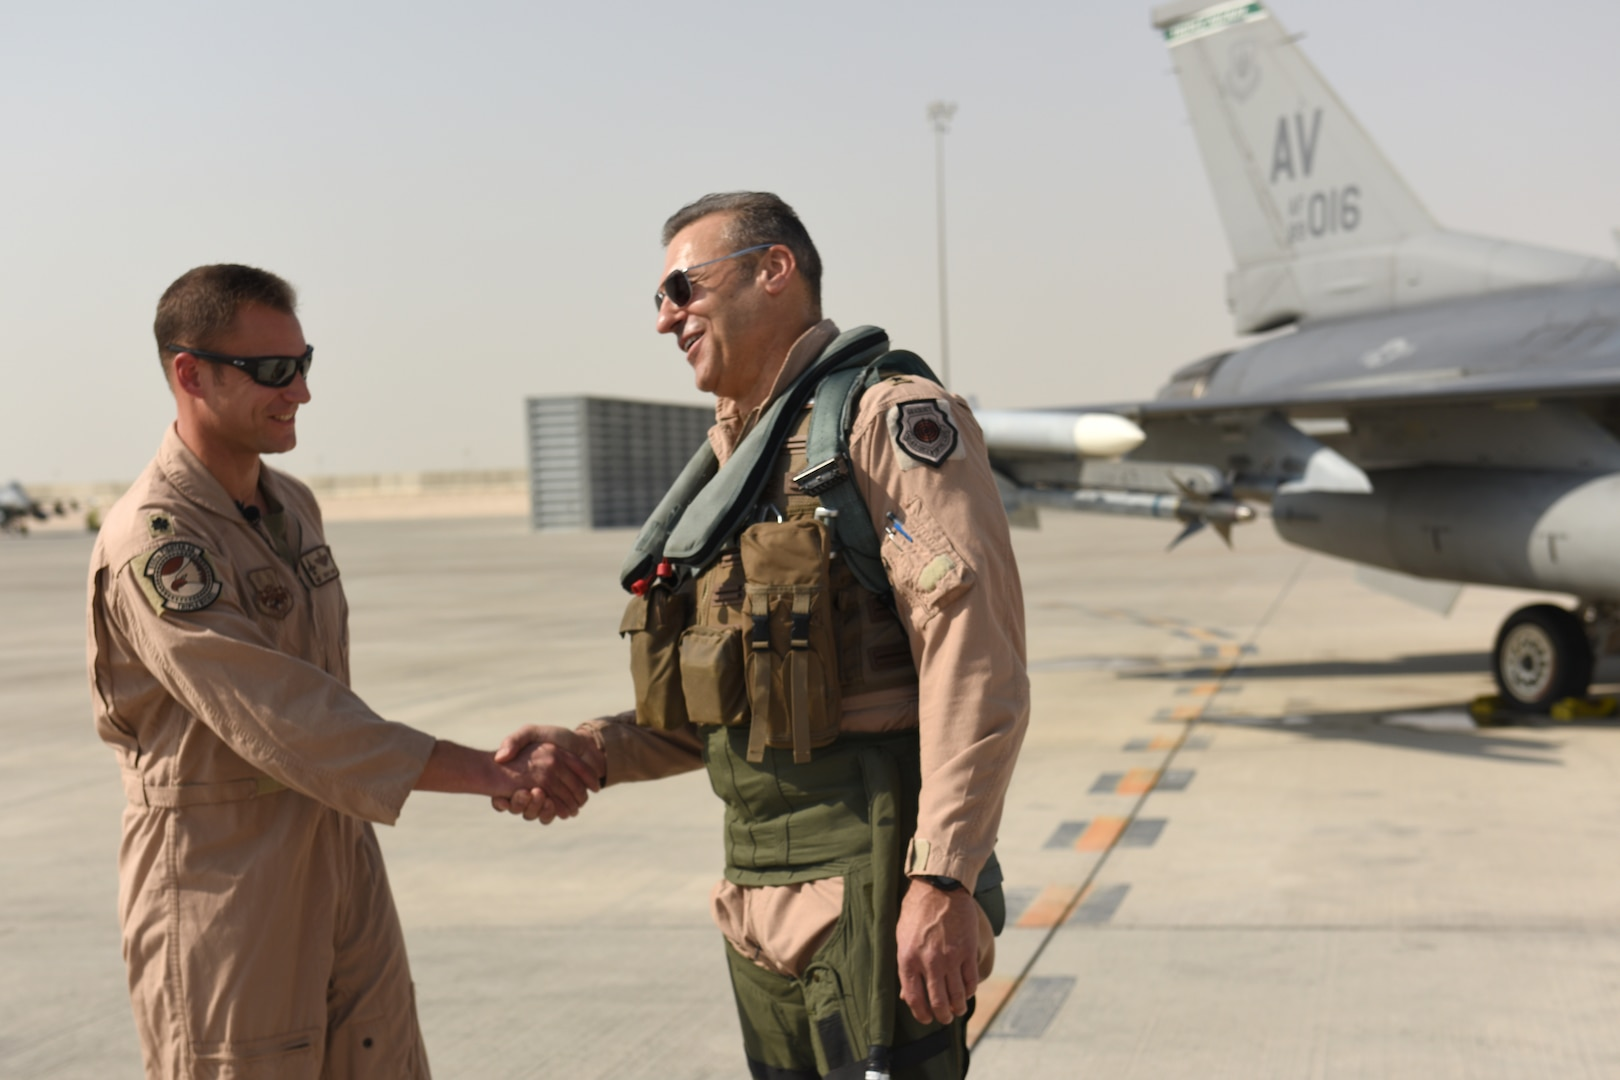 U.S. Air Force Lt. Col. Beau Diers, commander of the 555th Fighter Squadron, shakes hands with USAF Lt. Gen. Joseph Guastella, commander of U.S. Air Forces Central Command, before the general's flight in an F-16 Fighting Falcon at Al Udeid Air Base, Qatar Nov. 4, 2019.